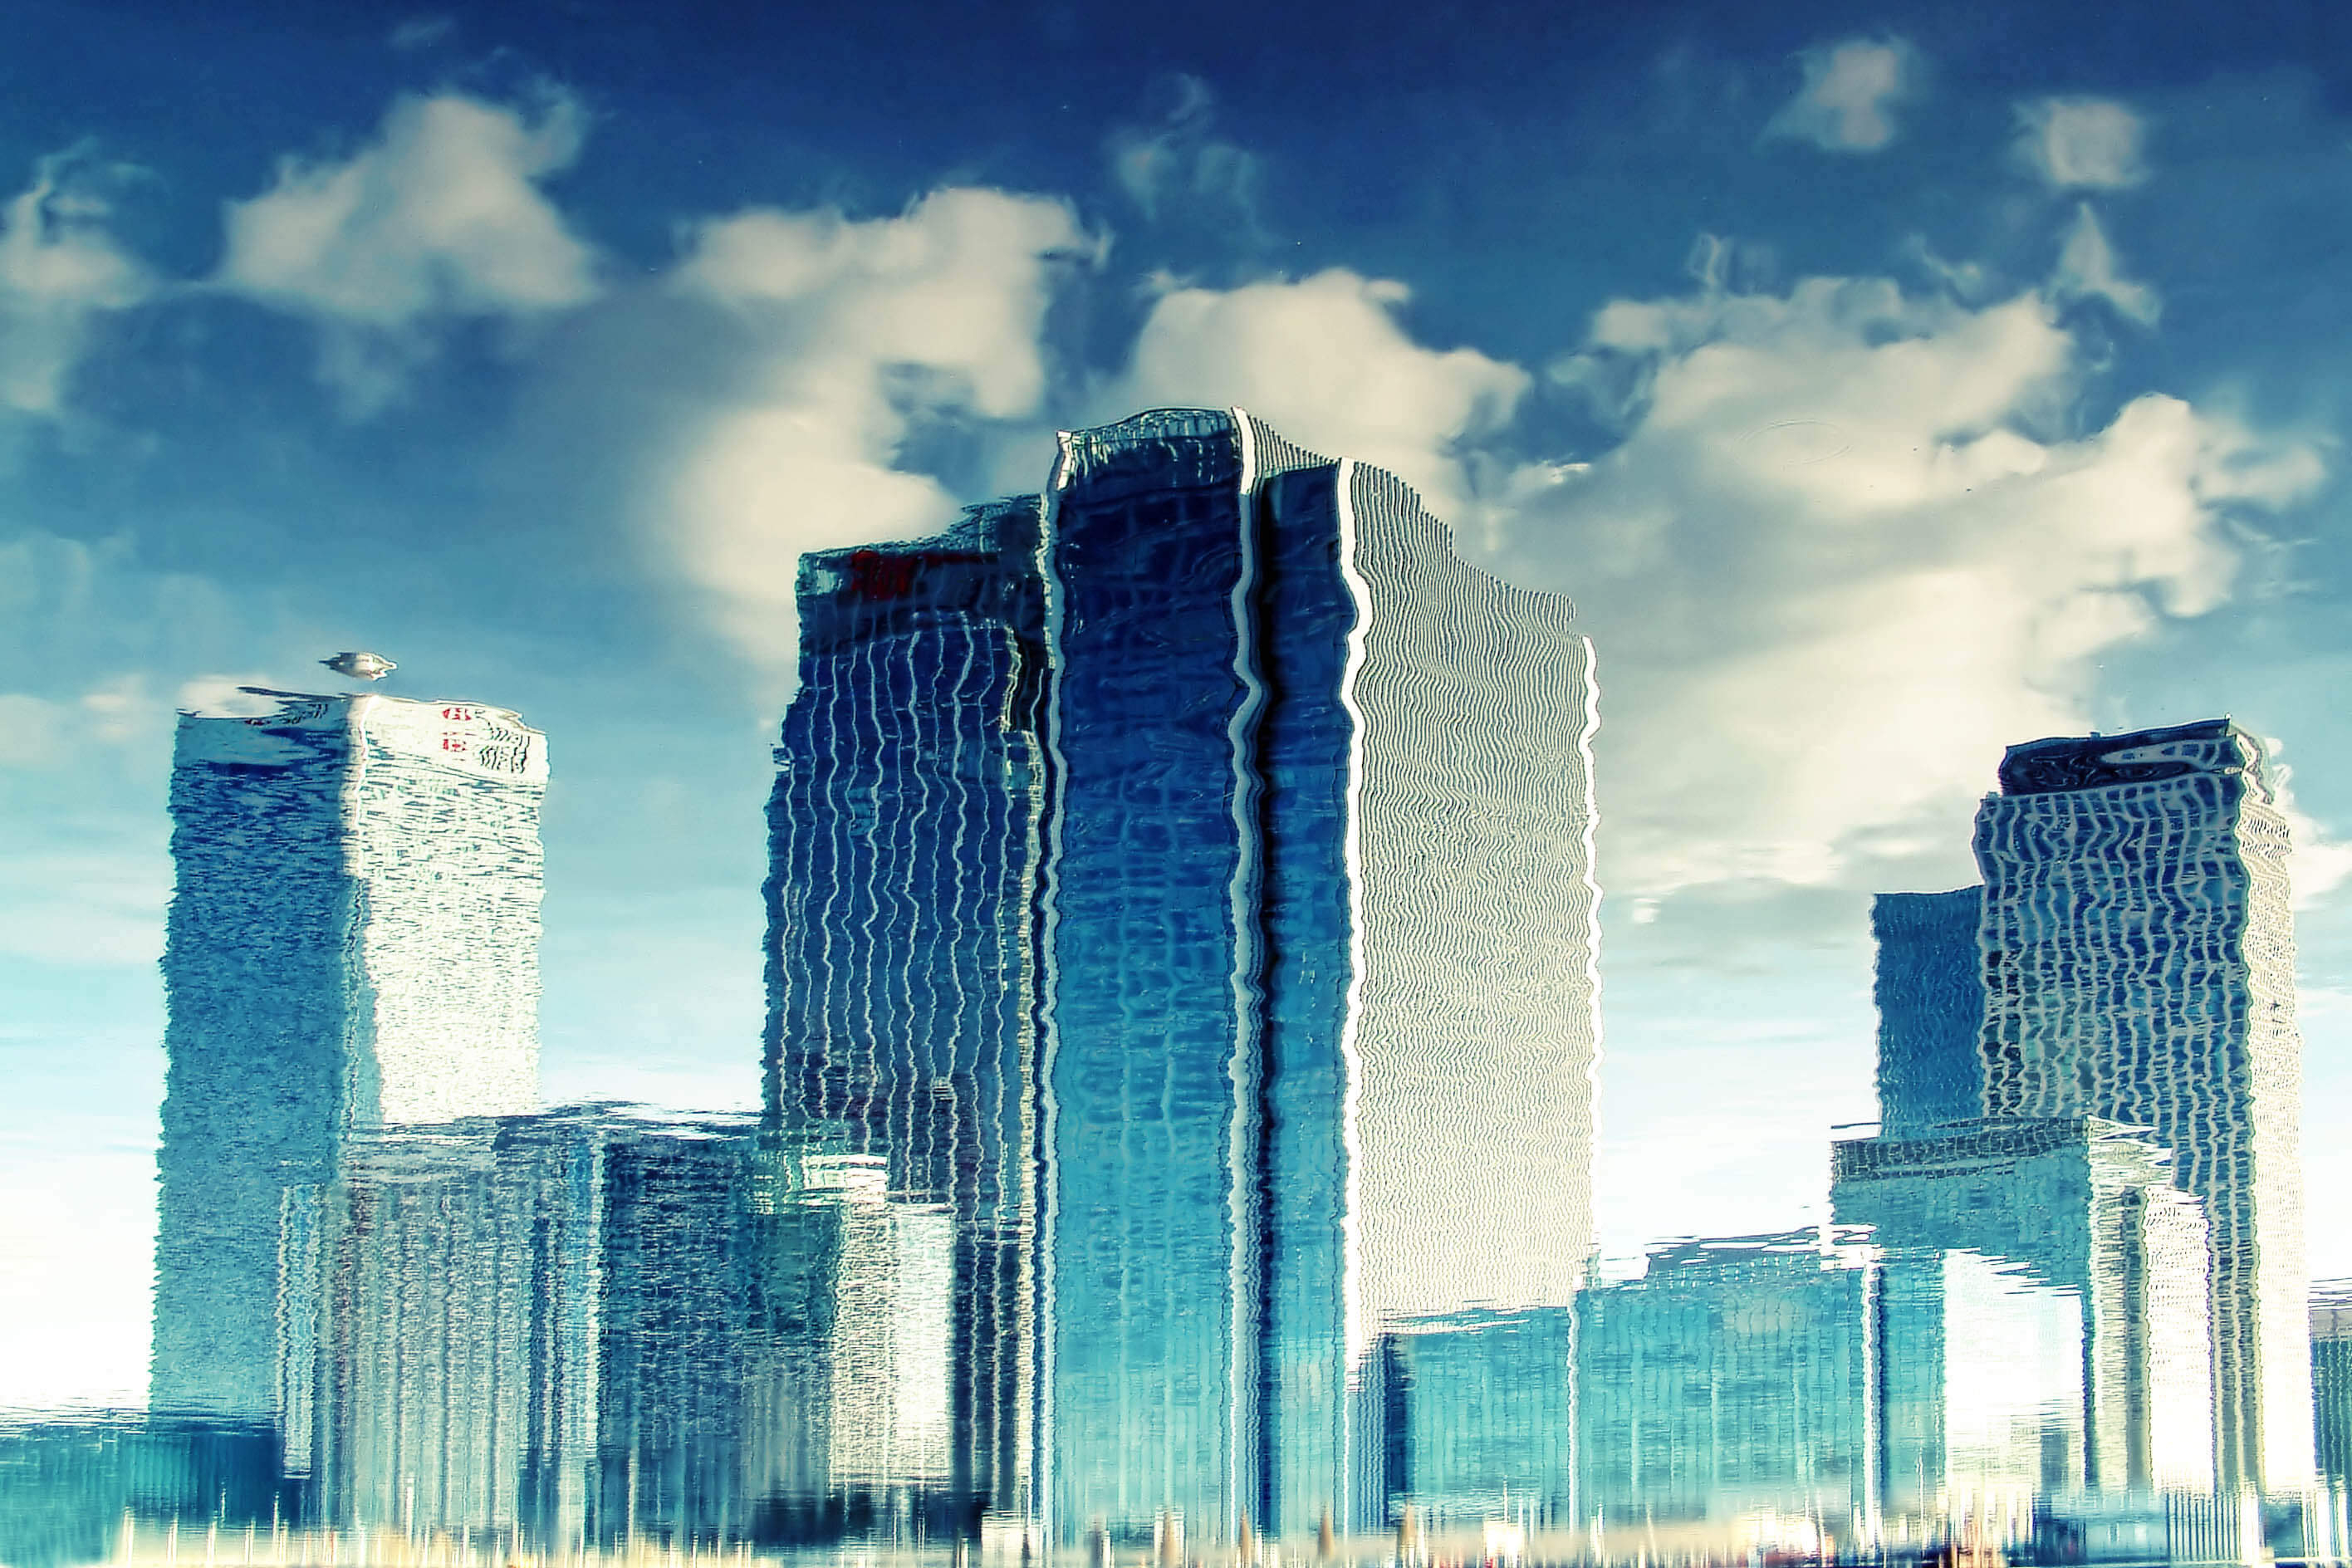 Docklands Reflections 05